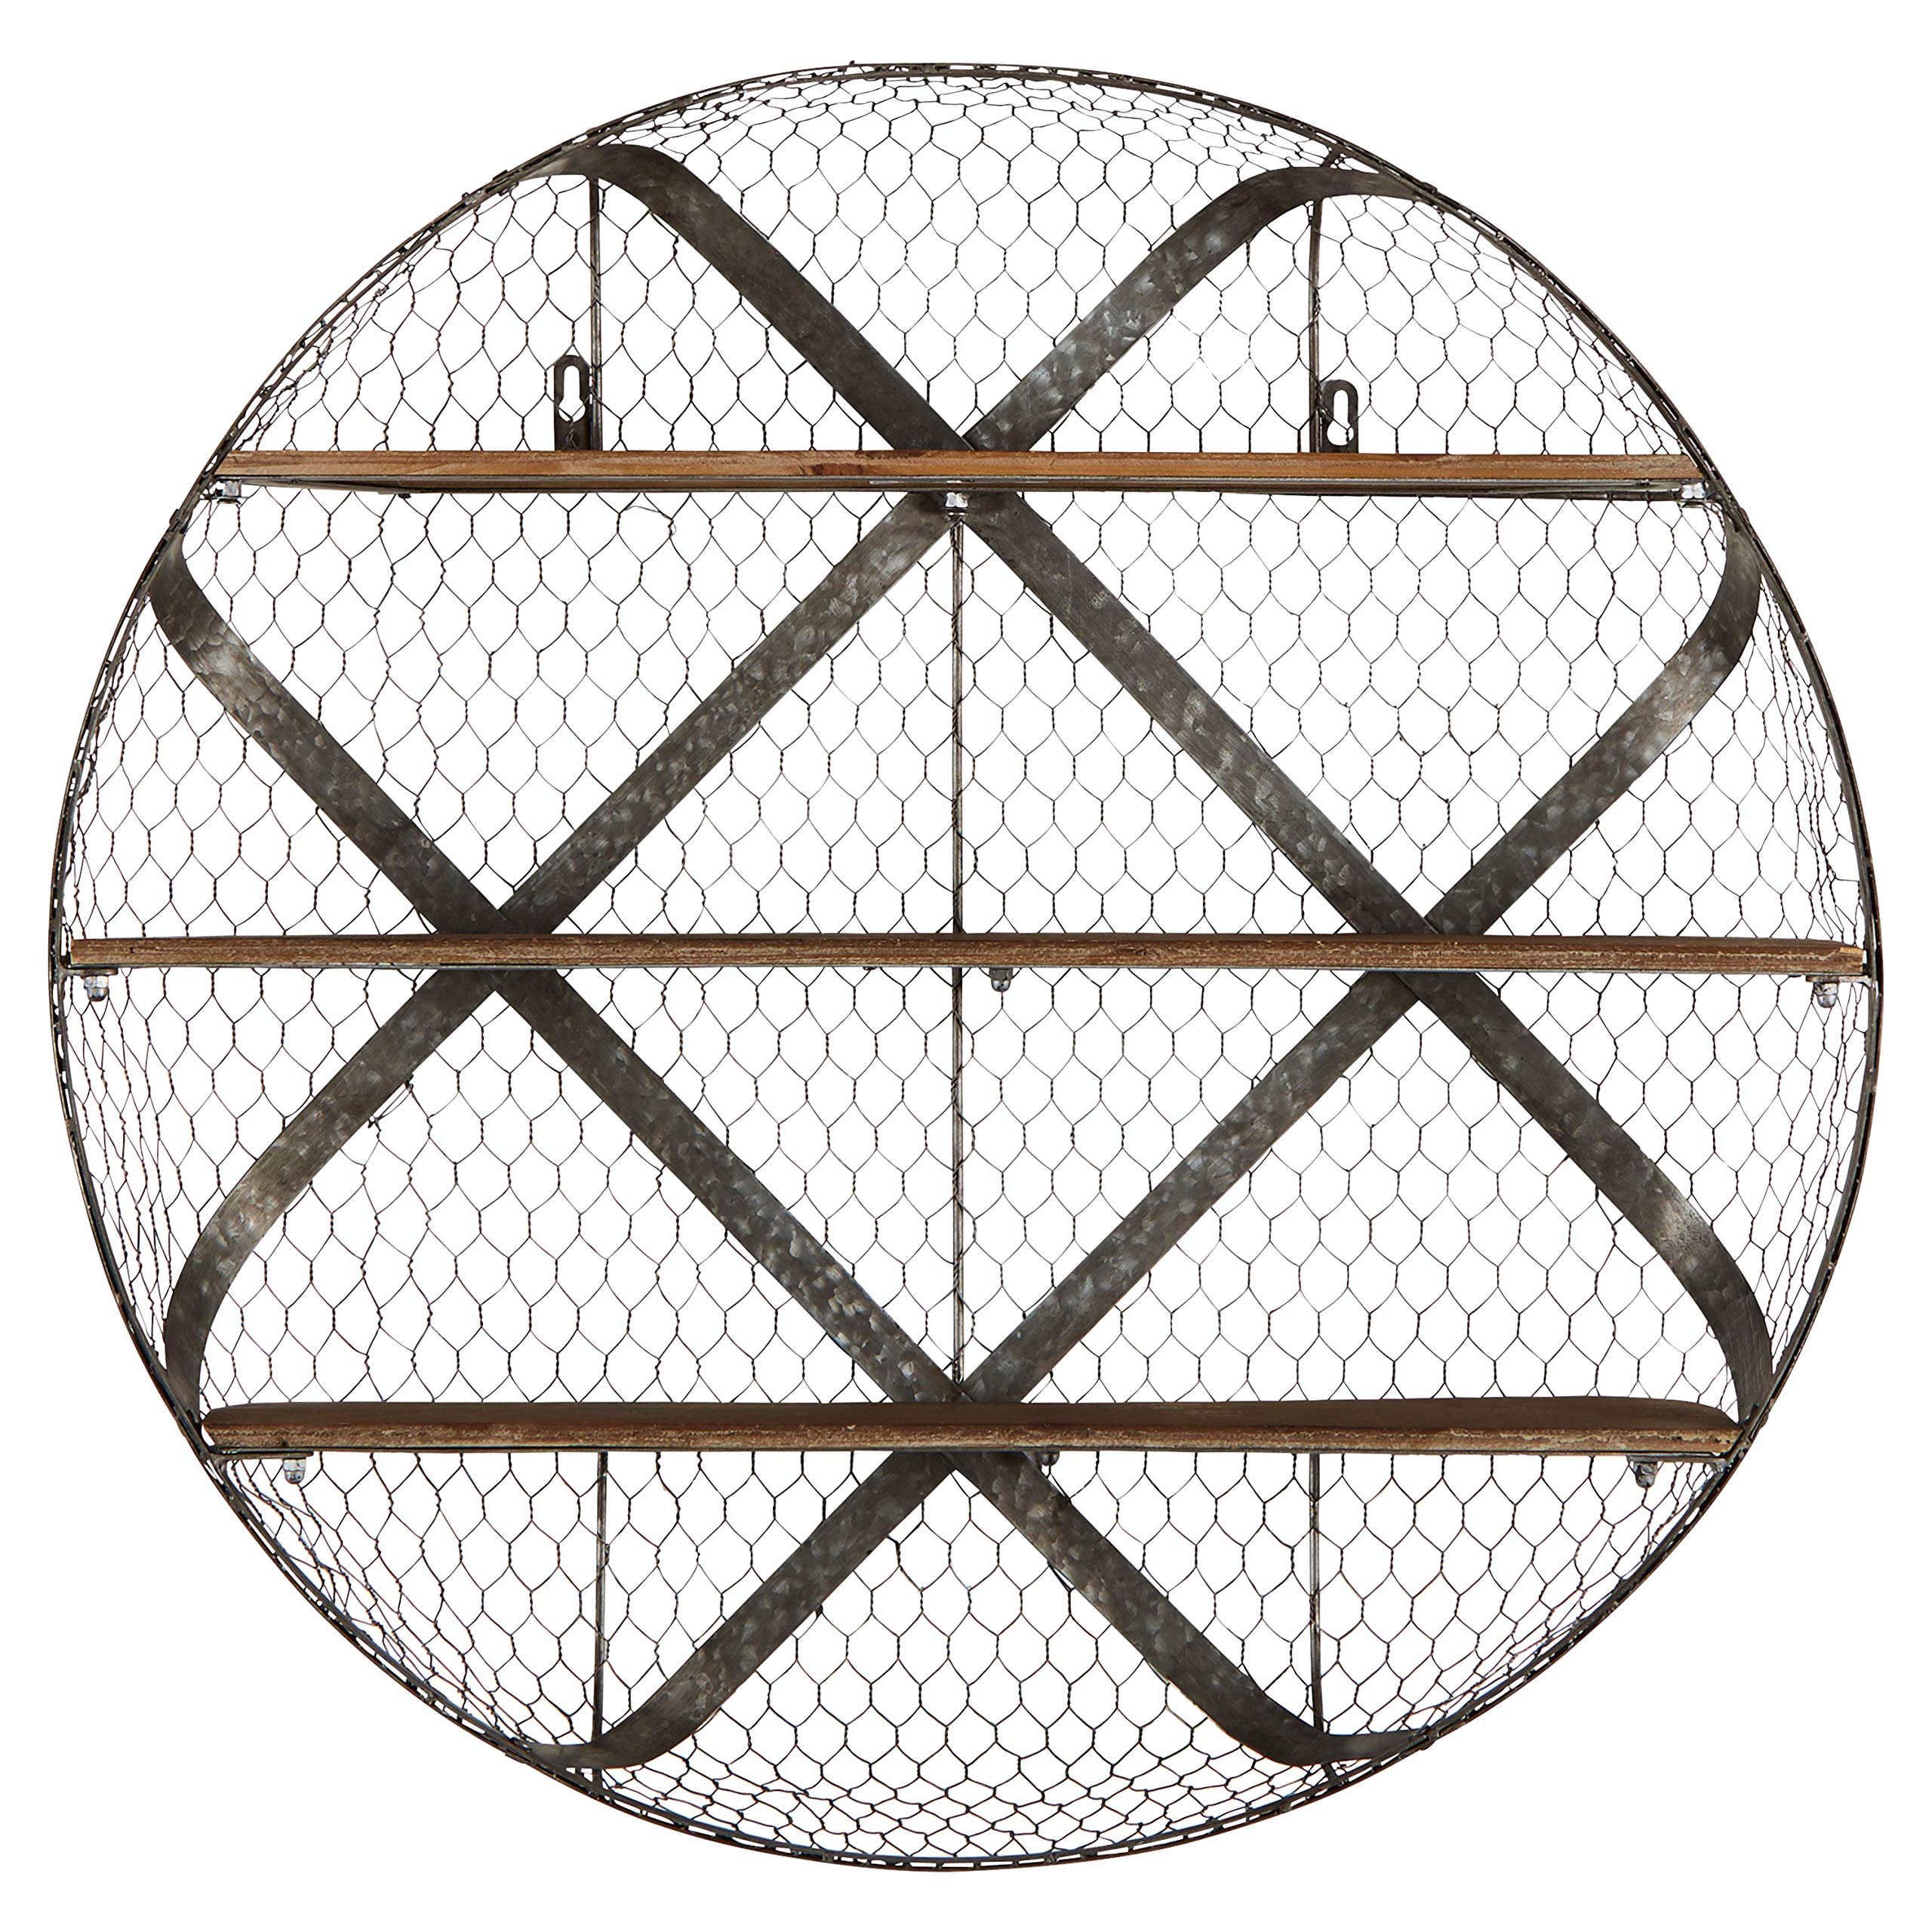 Stone & Beam Rustic Round Iron Mesh Shelf Unit with 3 Wood Shelves, 30.12''H, Natural Wood, Galvanized Iron